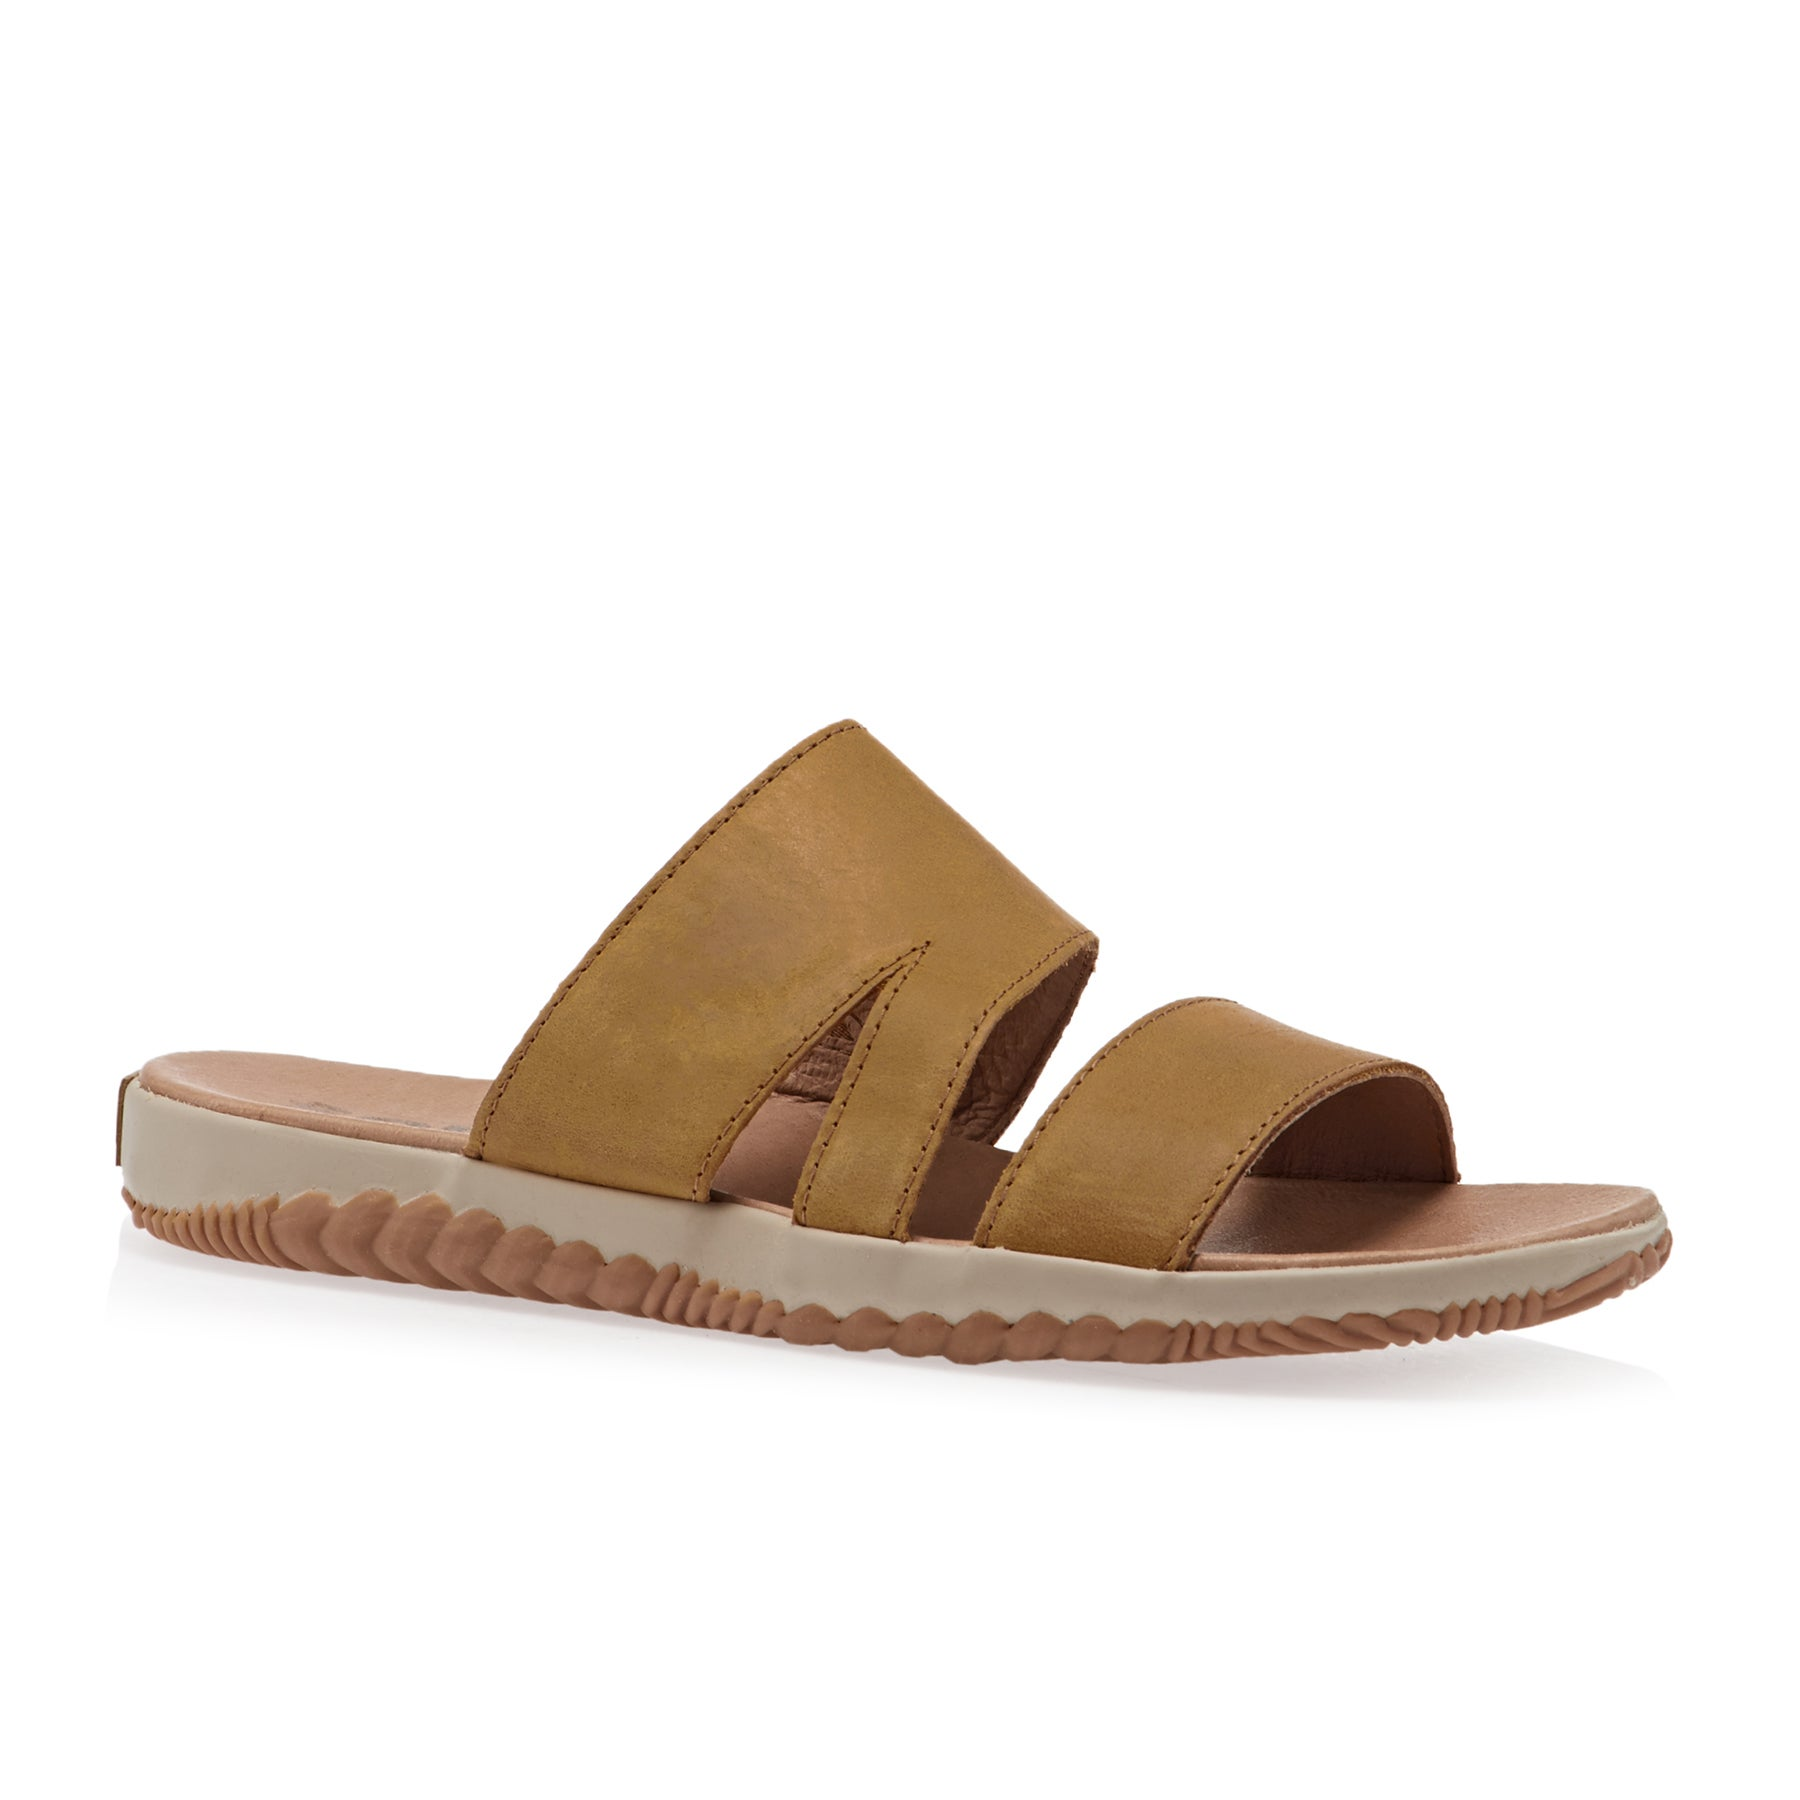 Sorel Out N About Plus Slide Womens Sandals - Camel Brown